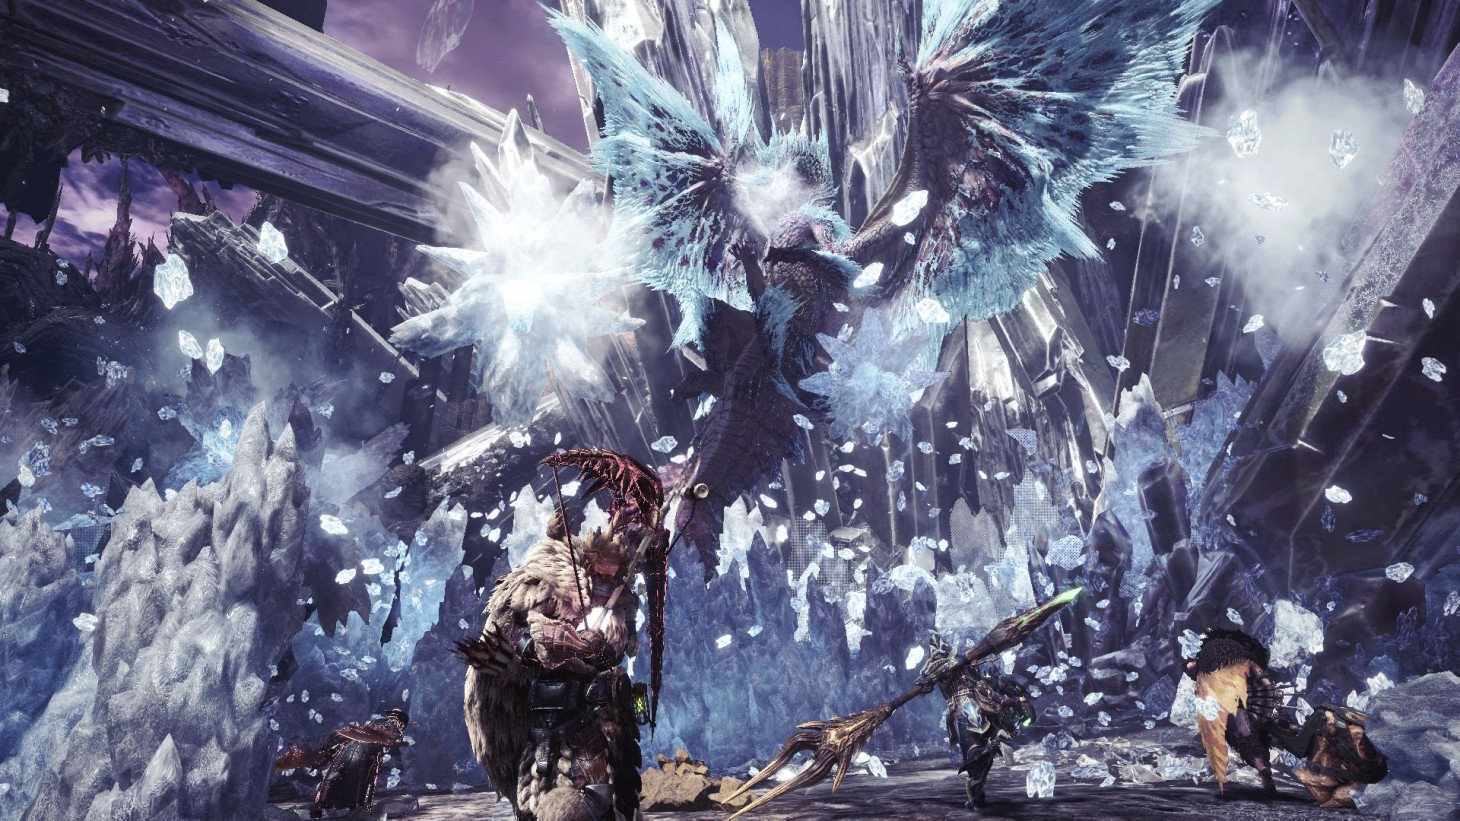 Monster Hunter World Iceborne Review Tough Challenges In The Bitter Cold Game Informer Easy boss no death and didnt even use potion xd. monster hunter world iceborne review